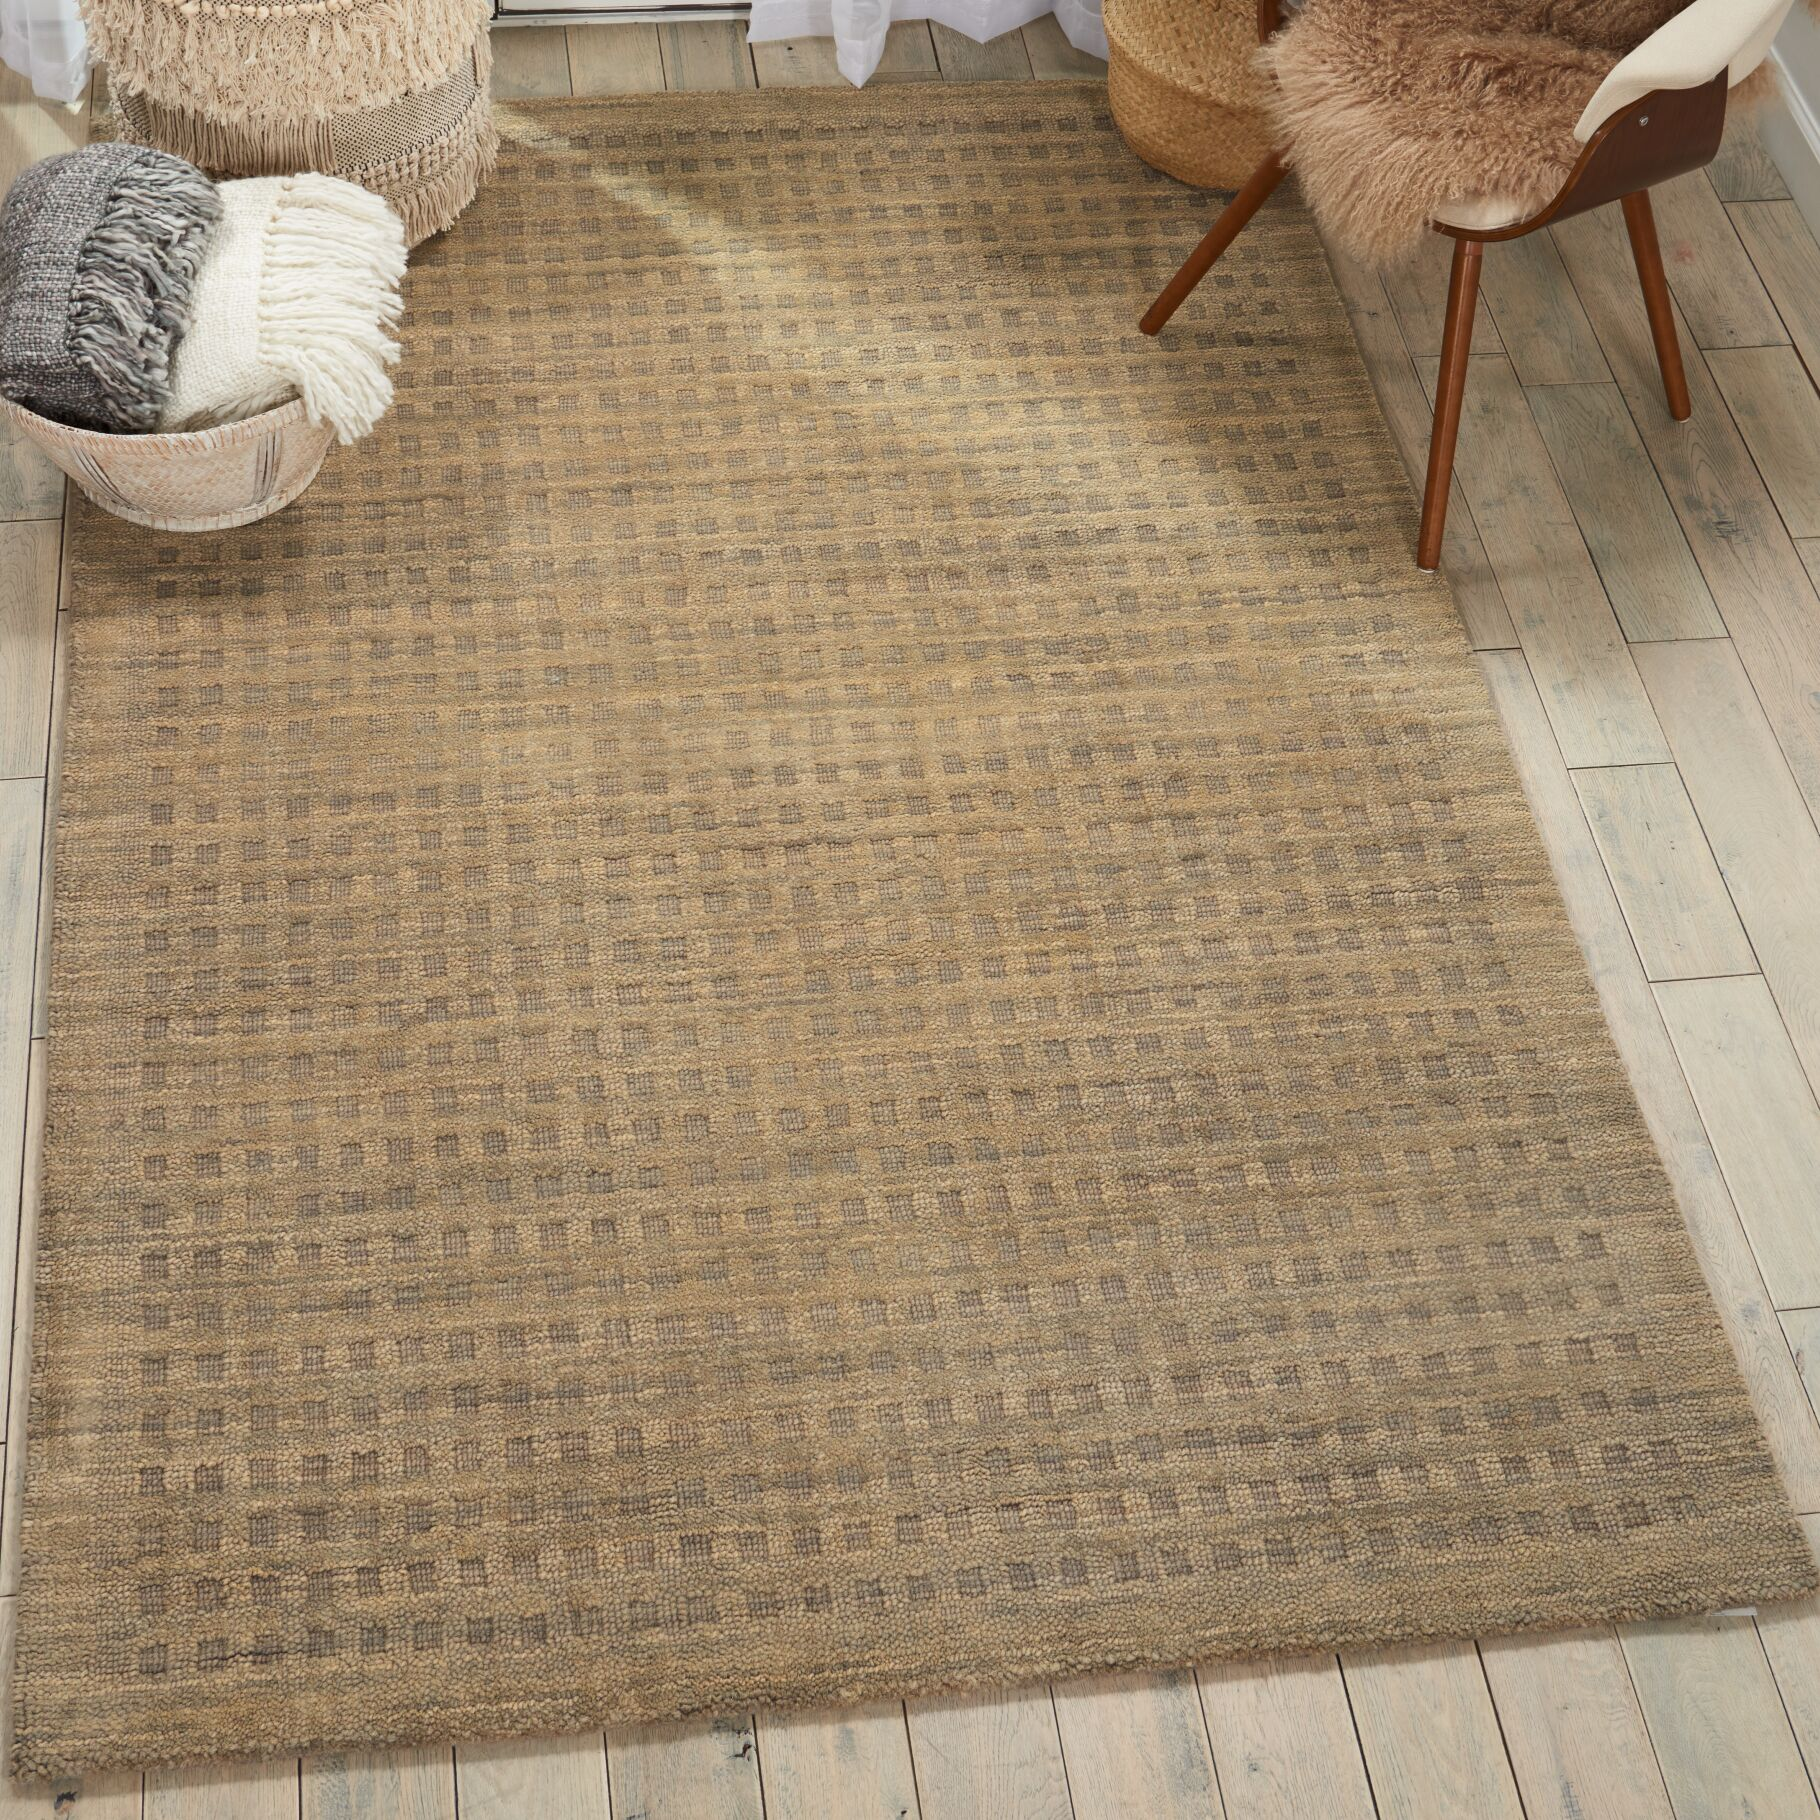 Dove Hand-Tufted Wool Latte Area Rug Rug Size: Rectangle 6'6